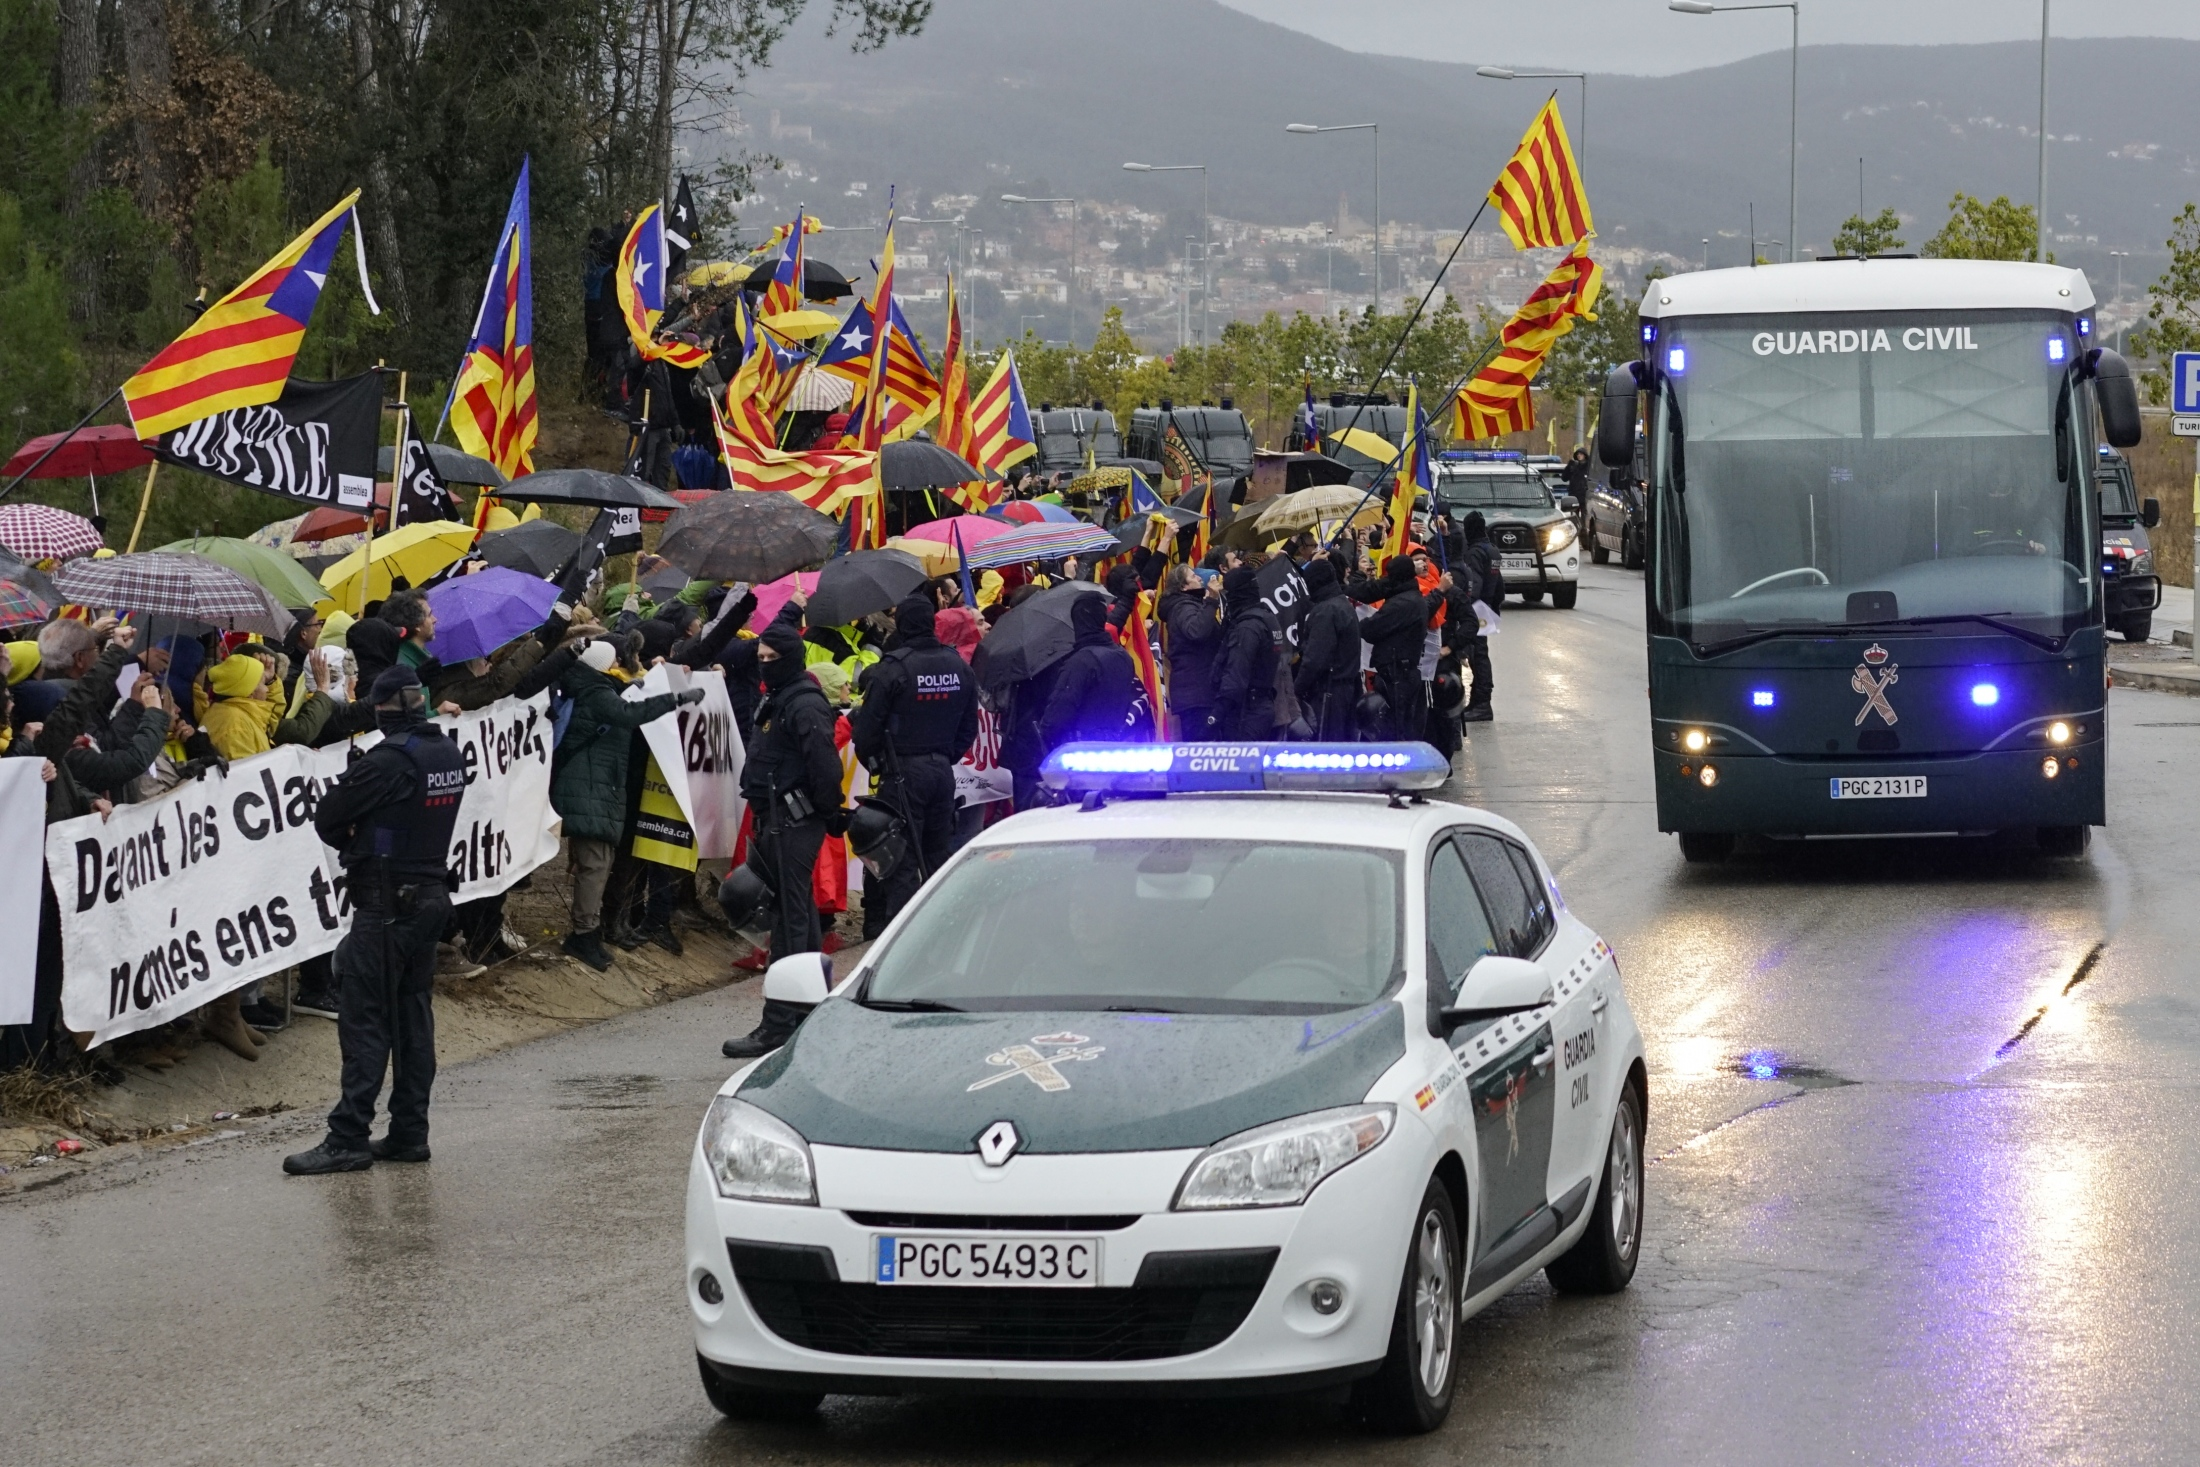 (AP Photo/Daniel Cole)  Demonstrators wave esteladas or independence flags as a bus of the Spain's Civil Guard carrying the nine Catalonian politicians and activists, leaves the Brians II prison, in Barcelona, Spain, Friday, Feb.1, 2019. Spanish authorities transferred nine politicians and activists on Friday from prisons in Catalonia to the country's capital, Madrid, ahead of a high-stakes trial for their part in an attempt to secede from Spain.